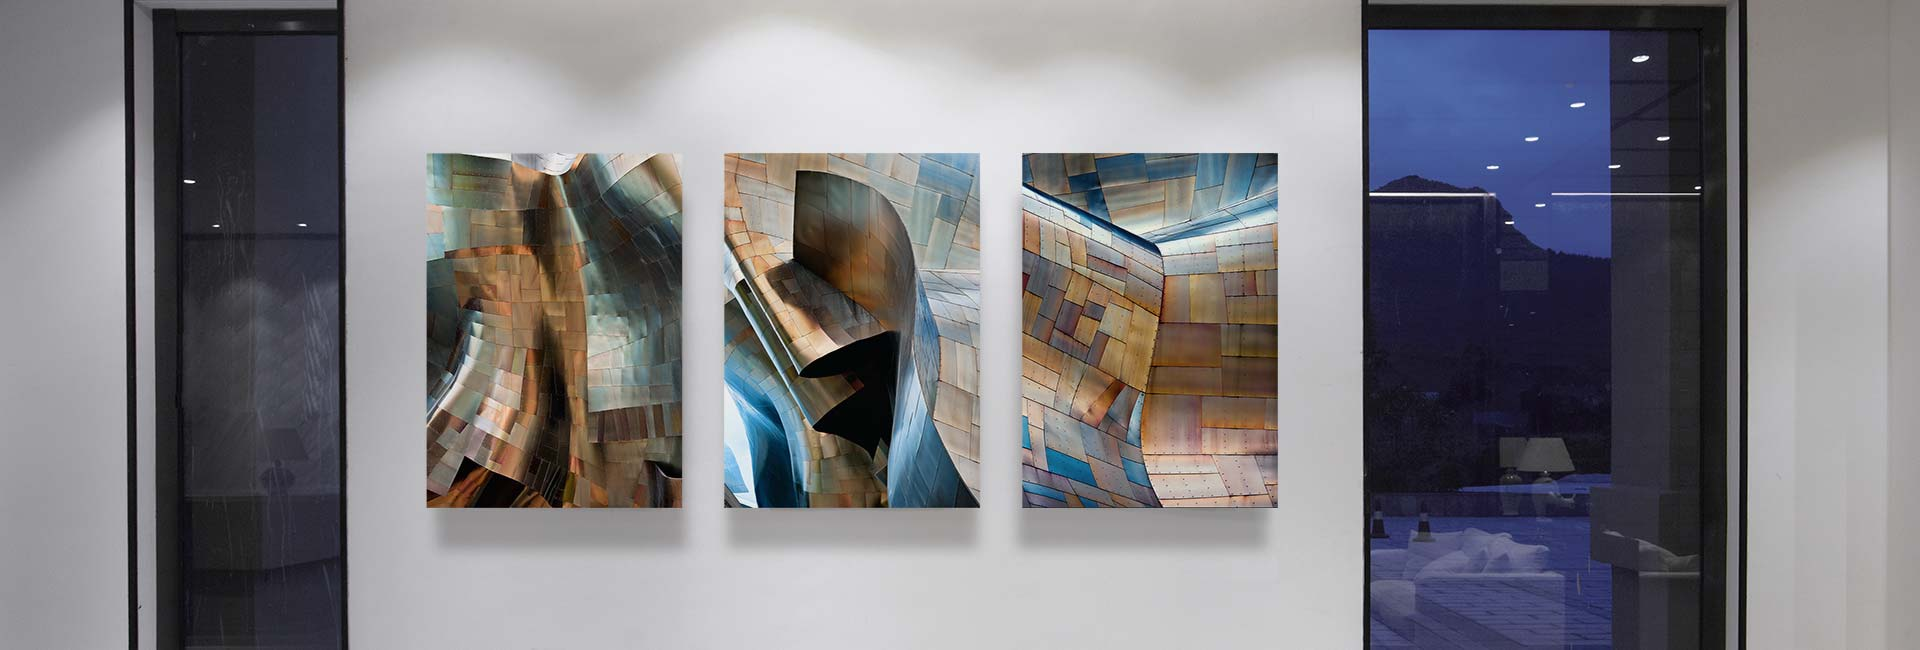 Gehry's Children architectural photo series – acrylic float mounted gallery prints